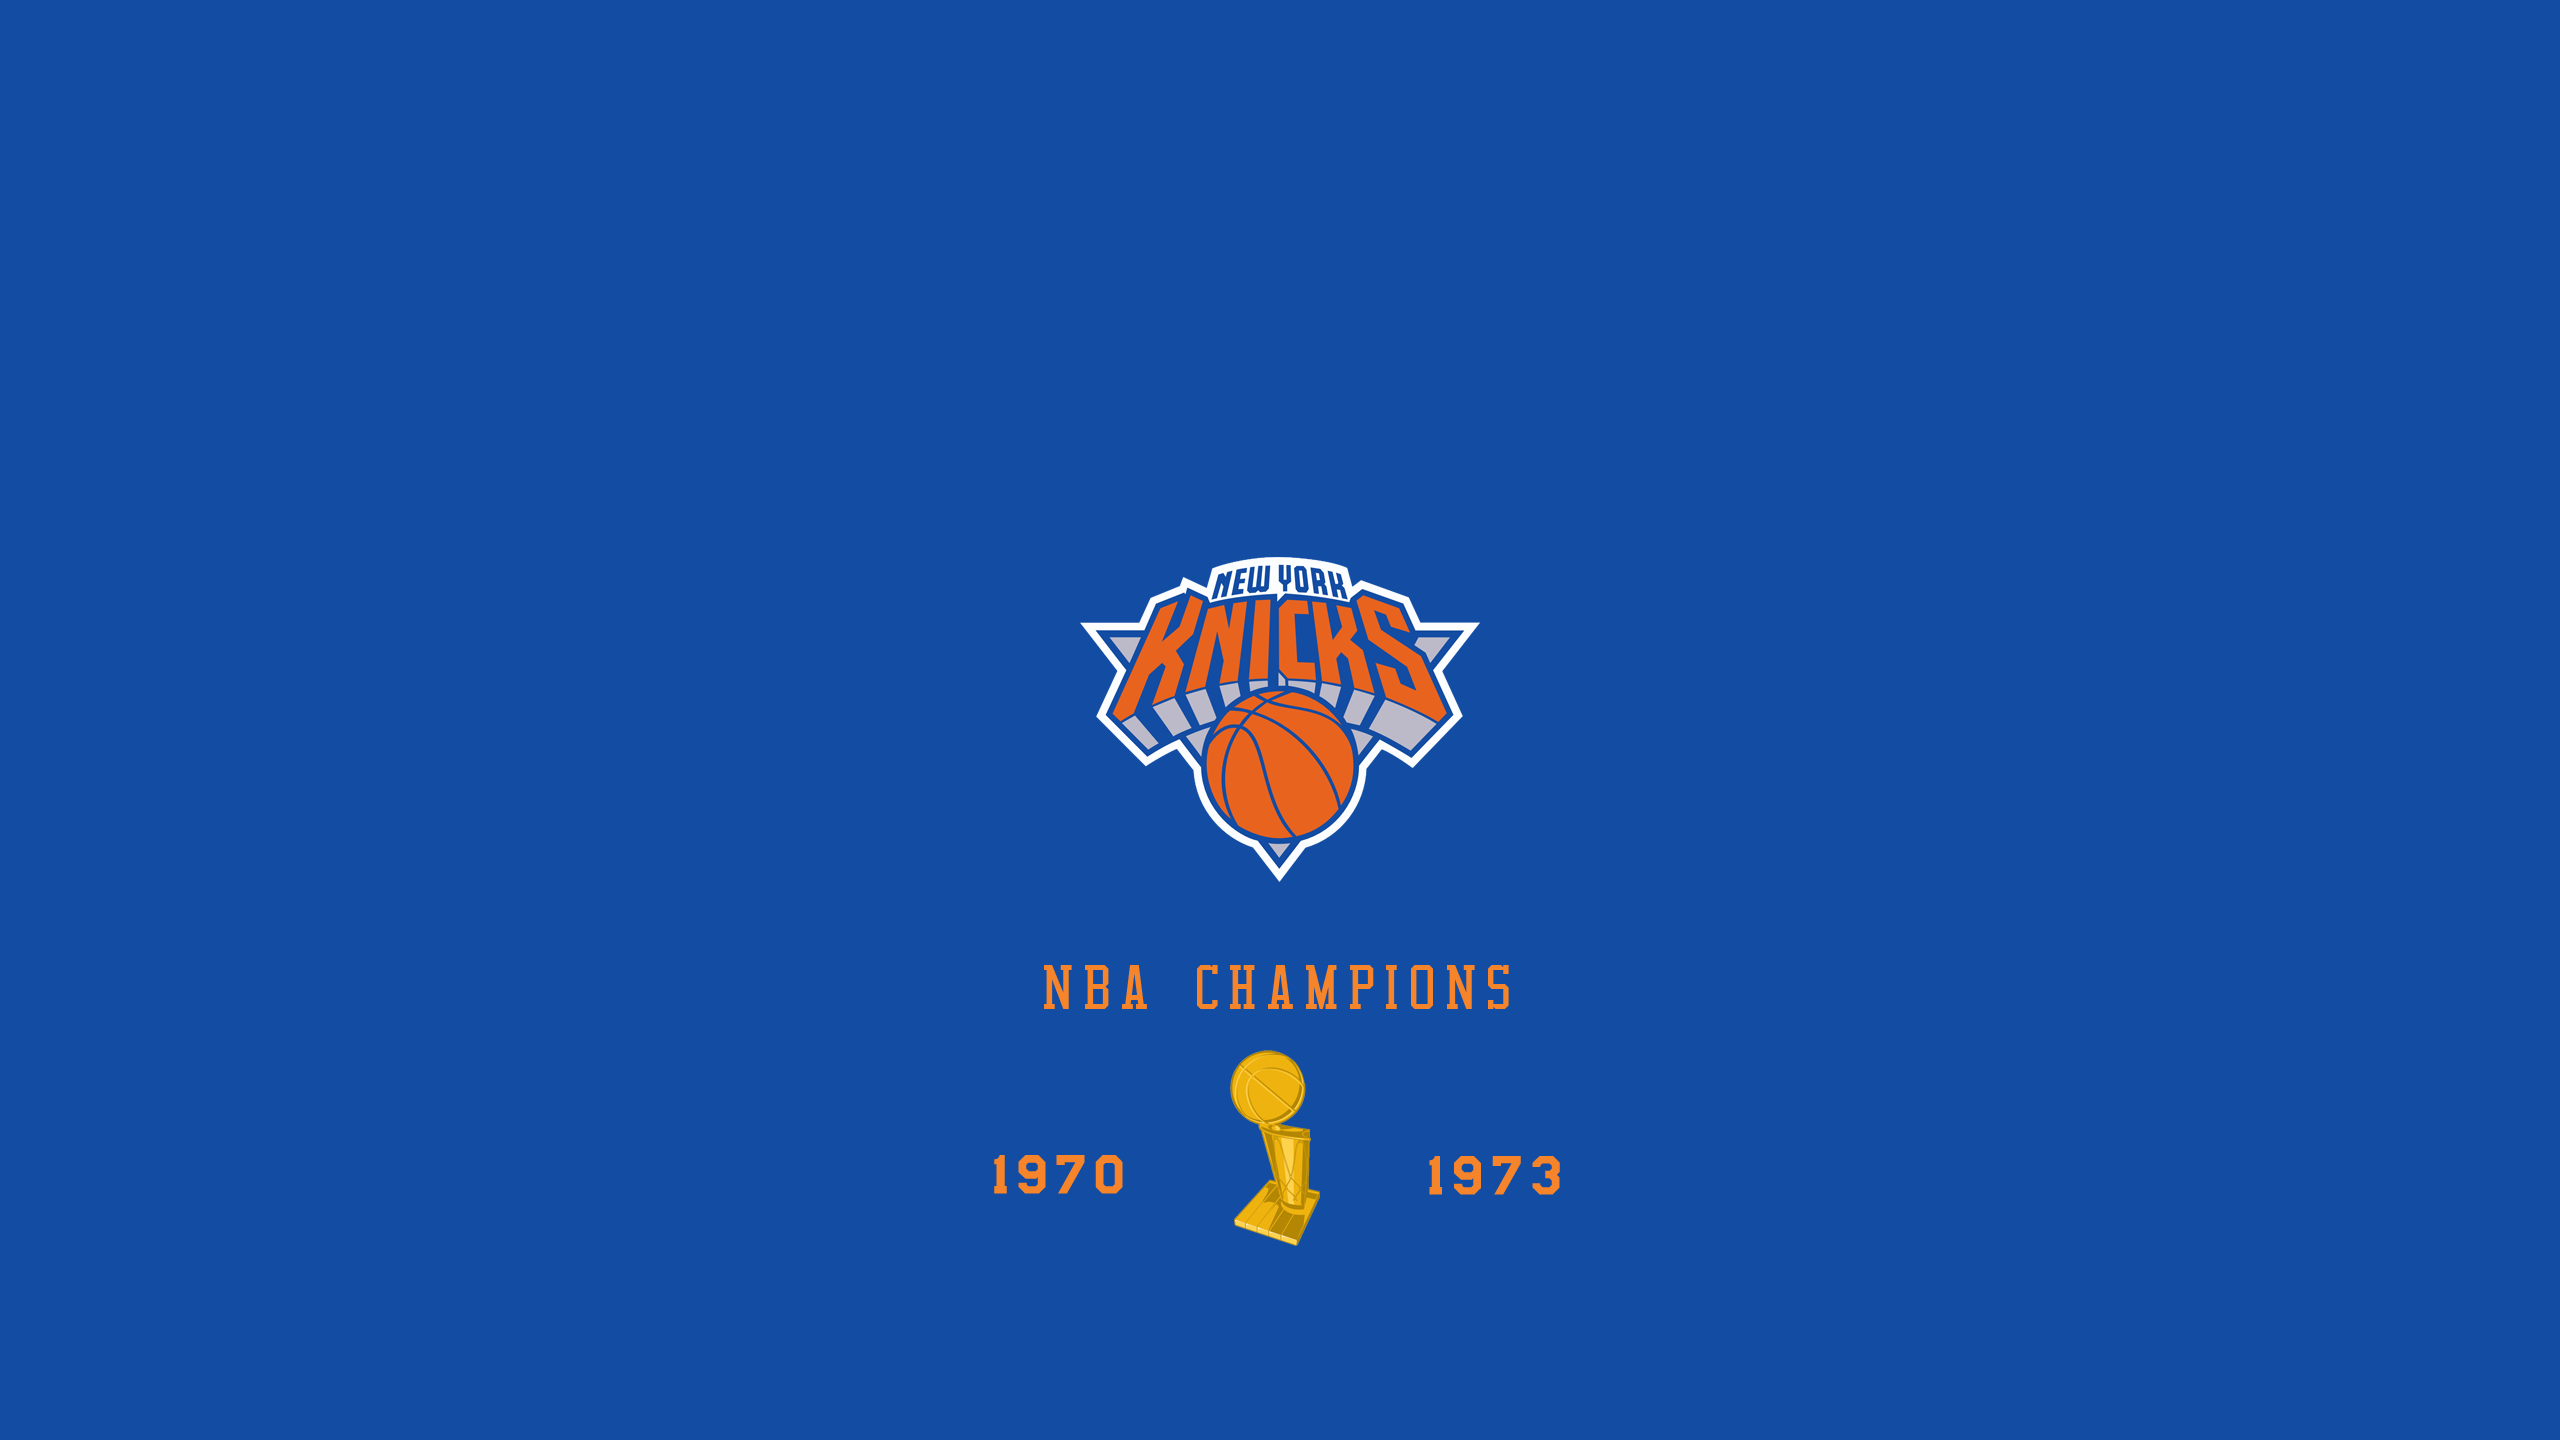 New York Knicks - NBA Champs